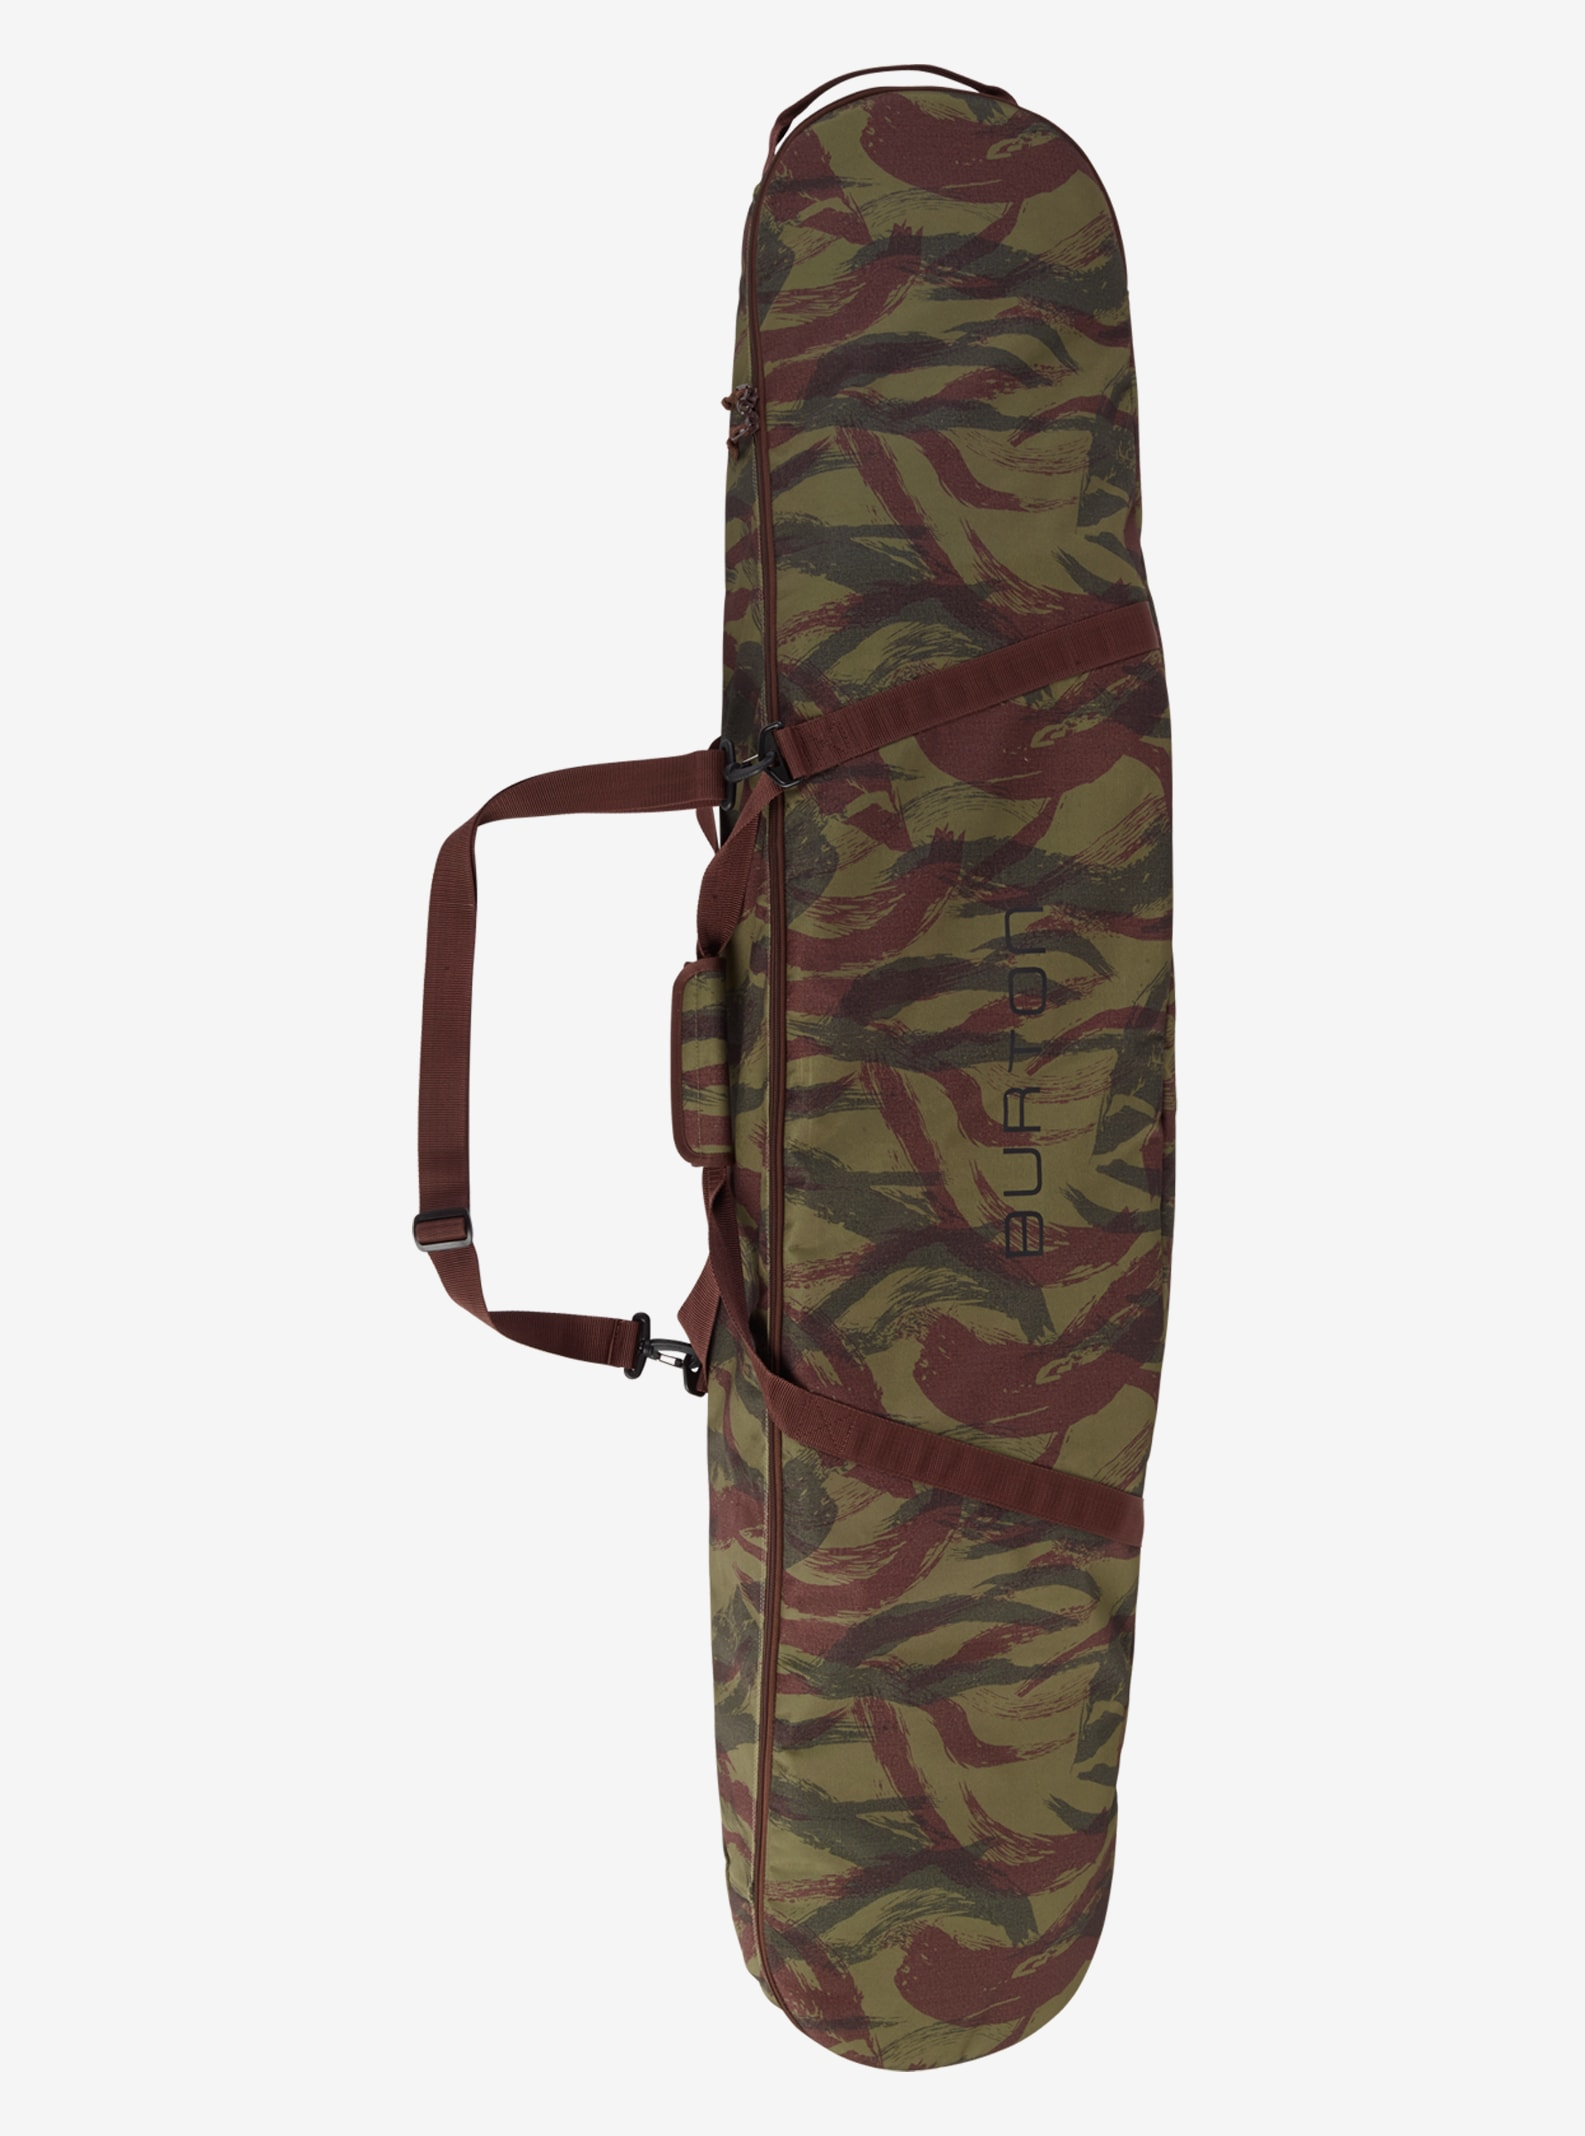 Burton Space Sack shown in Brushstroke Camo Print